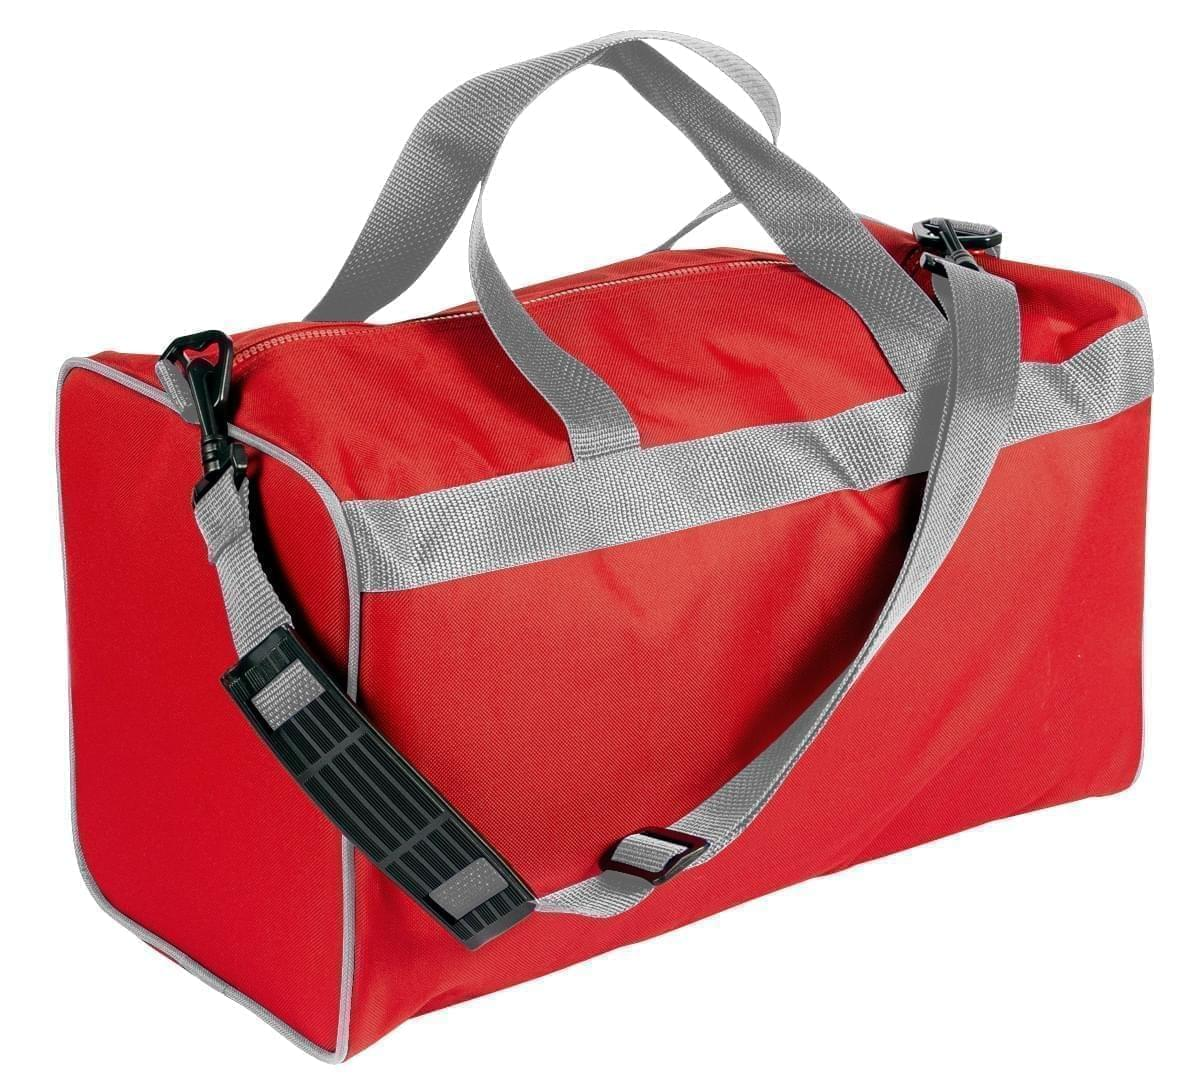 USA Made Nylon Poly Weekend Duffles, Red-Grey, WLKX31AAZU